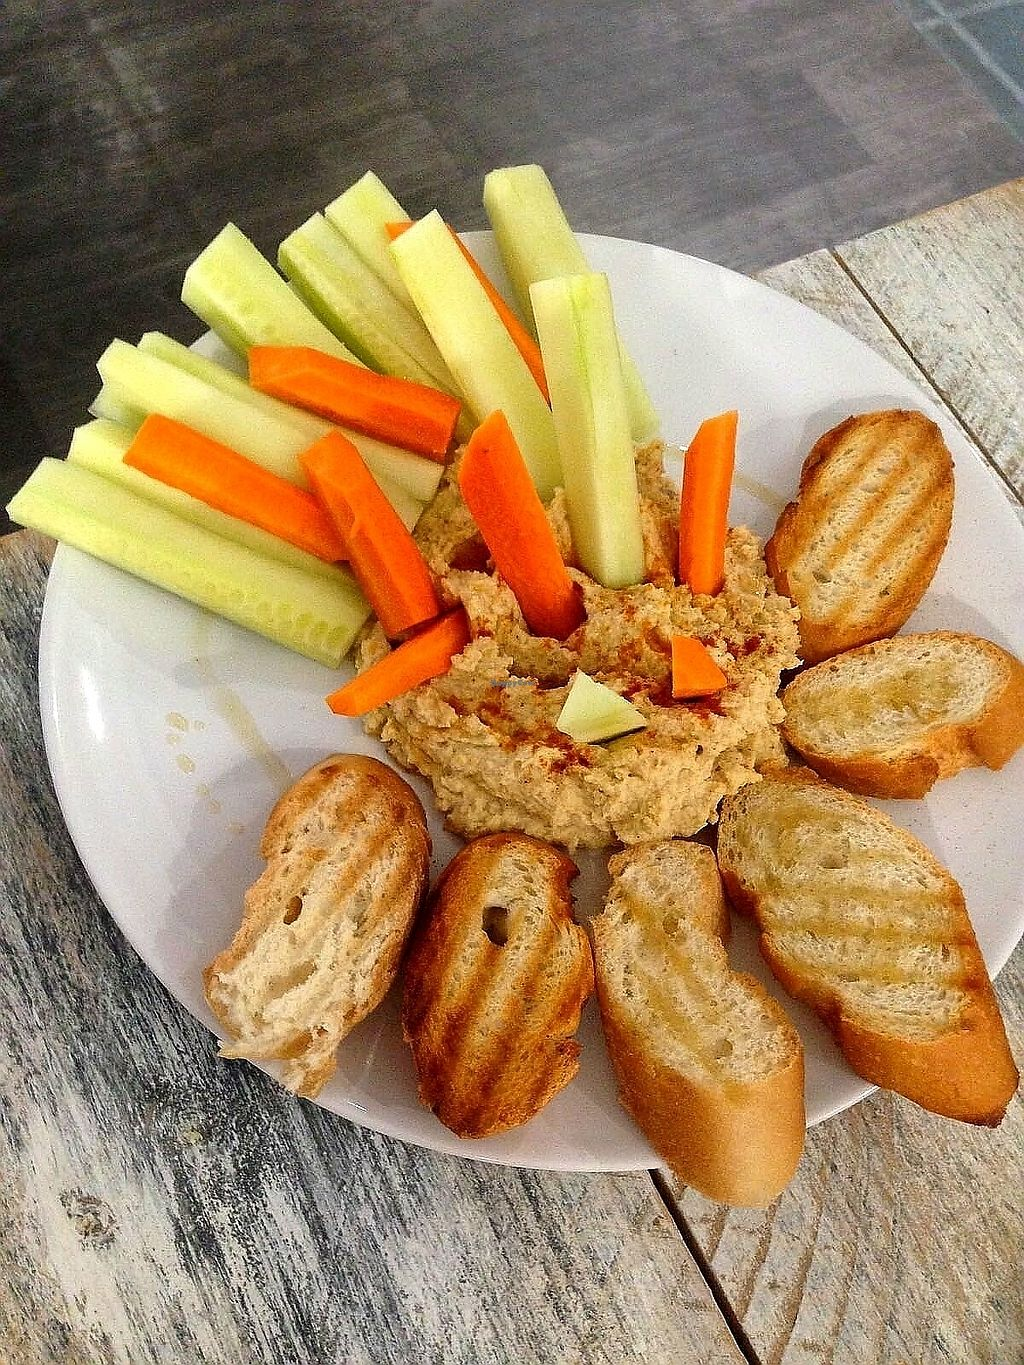 """Photo of Vegan Ibiza  by <a href=""""/members/profile/wyrd"""">wyrd</a> <br/>Hummus with bread and vegetables <br/> August 24, 2017  - <a href='/contact/abuse/image/93478/296837'>Report</a>"""